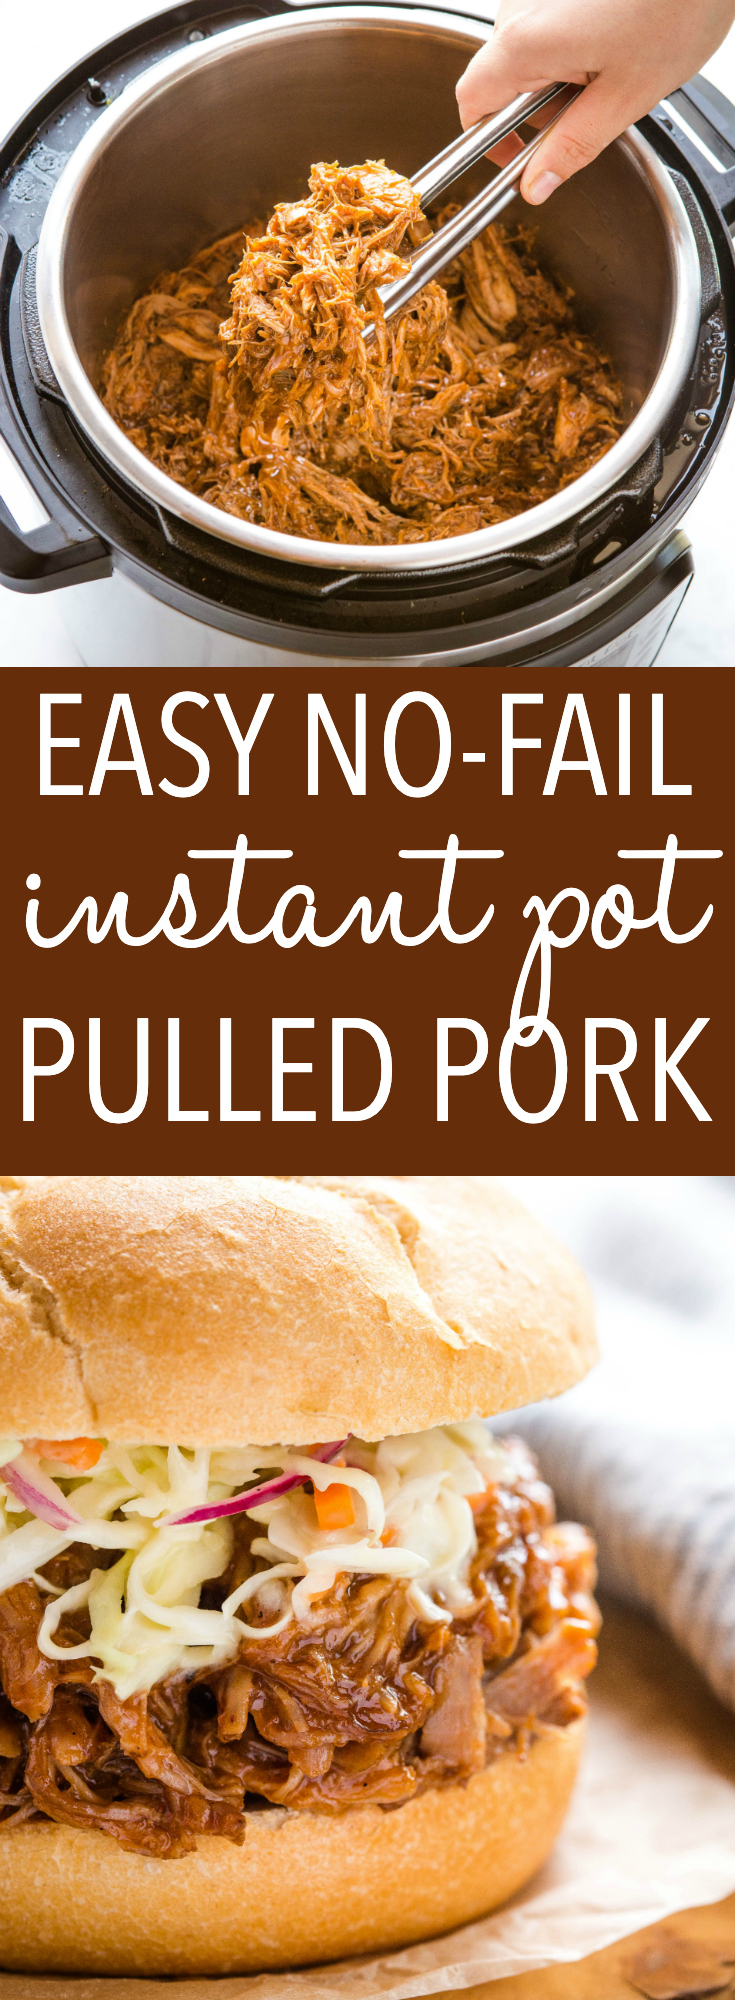 This Easy Instant Pot Pulled Pork is a simple version of classic barbecue pulled pork - juicy & flavourful, made in only one hour! Recipe from thebusybaker.ca! #pulledpork #sandwiches #barbecue #dinner #weeknightmeal via @busybakerblog